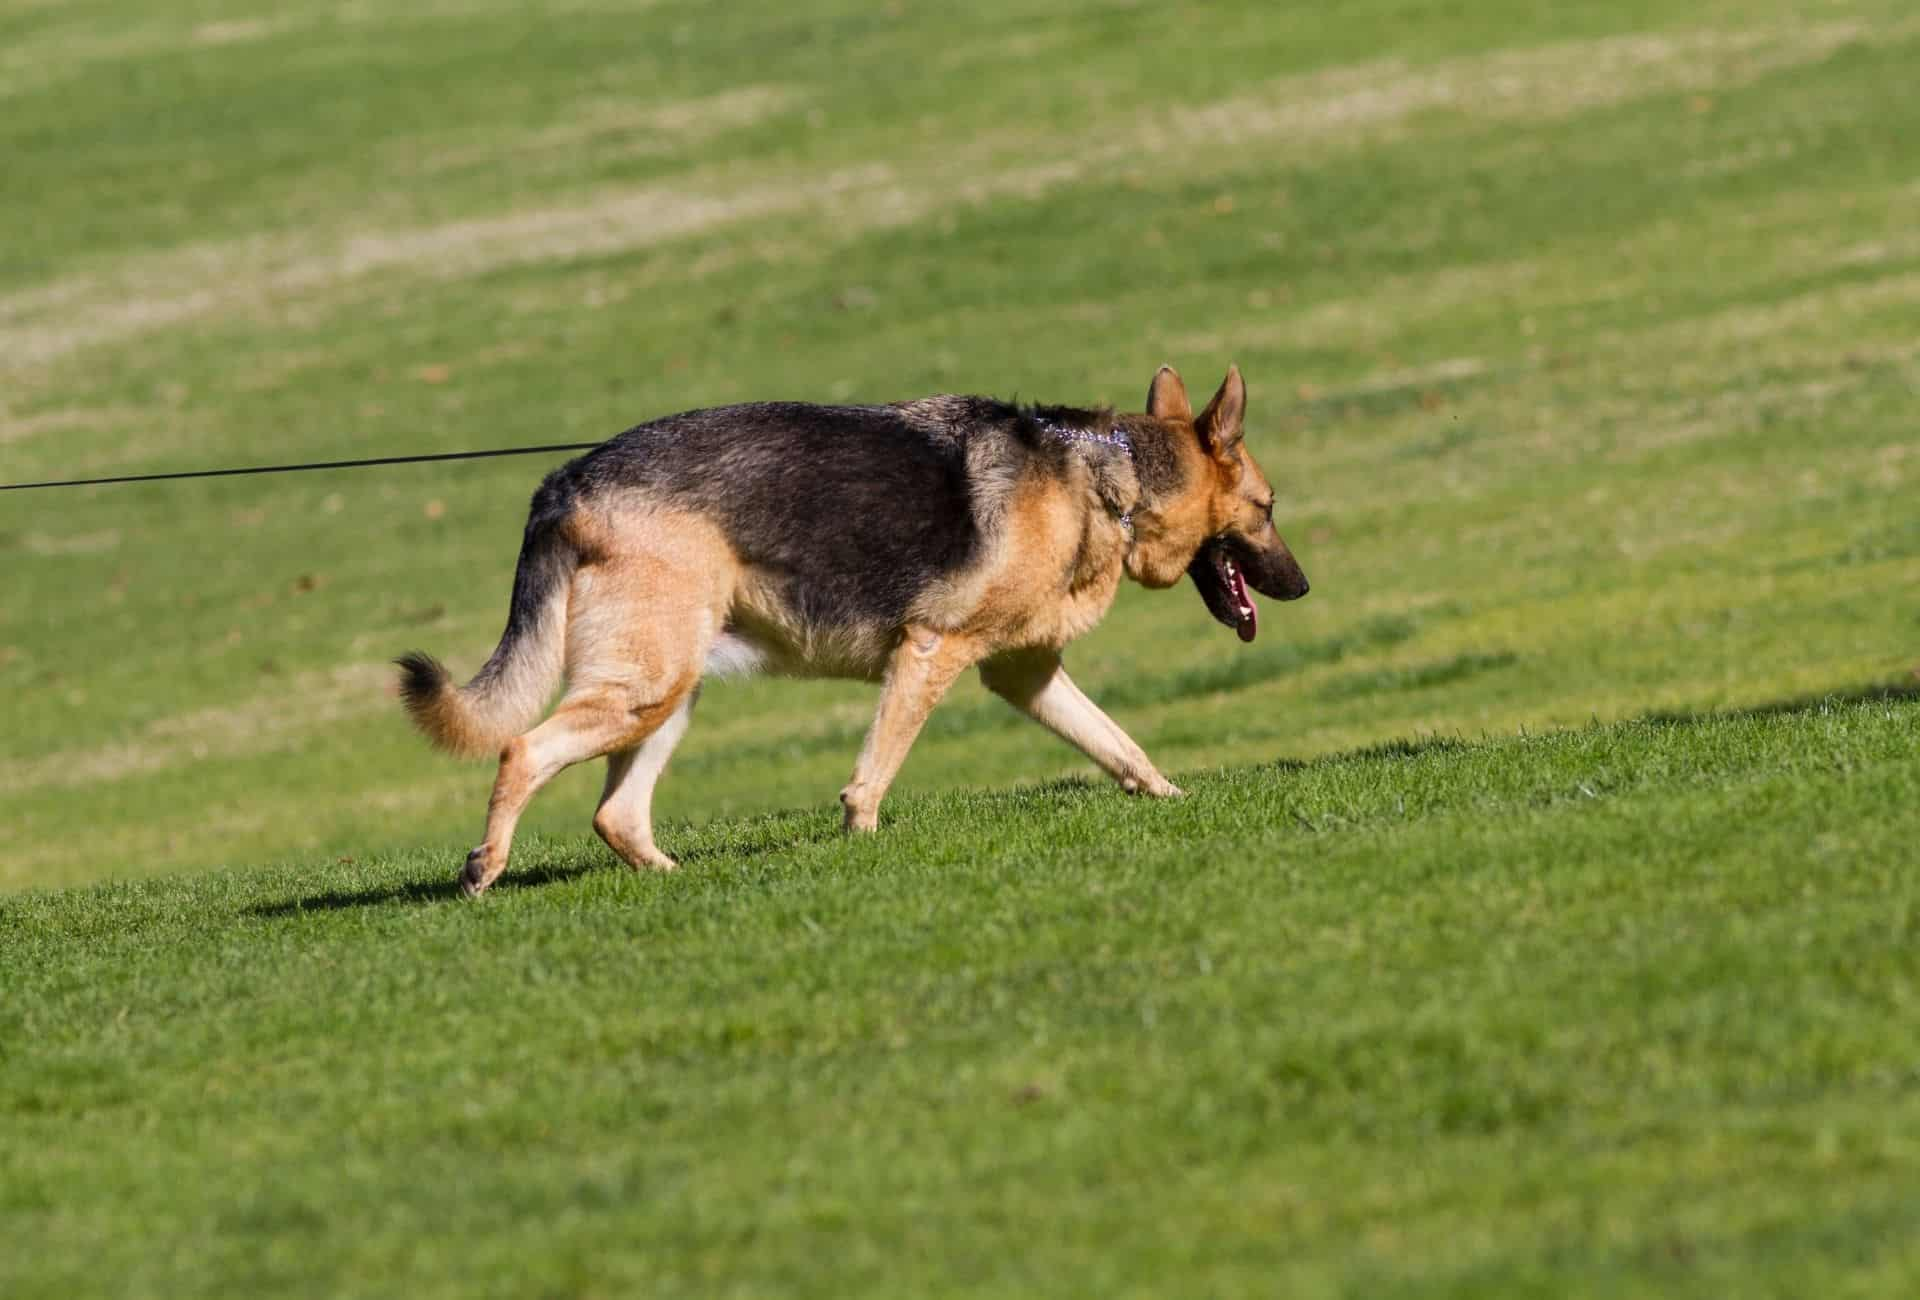 Black and tan German Shepherd is walking on a leash over grass.